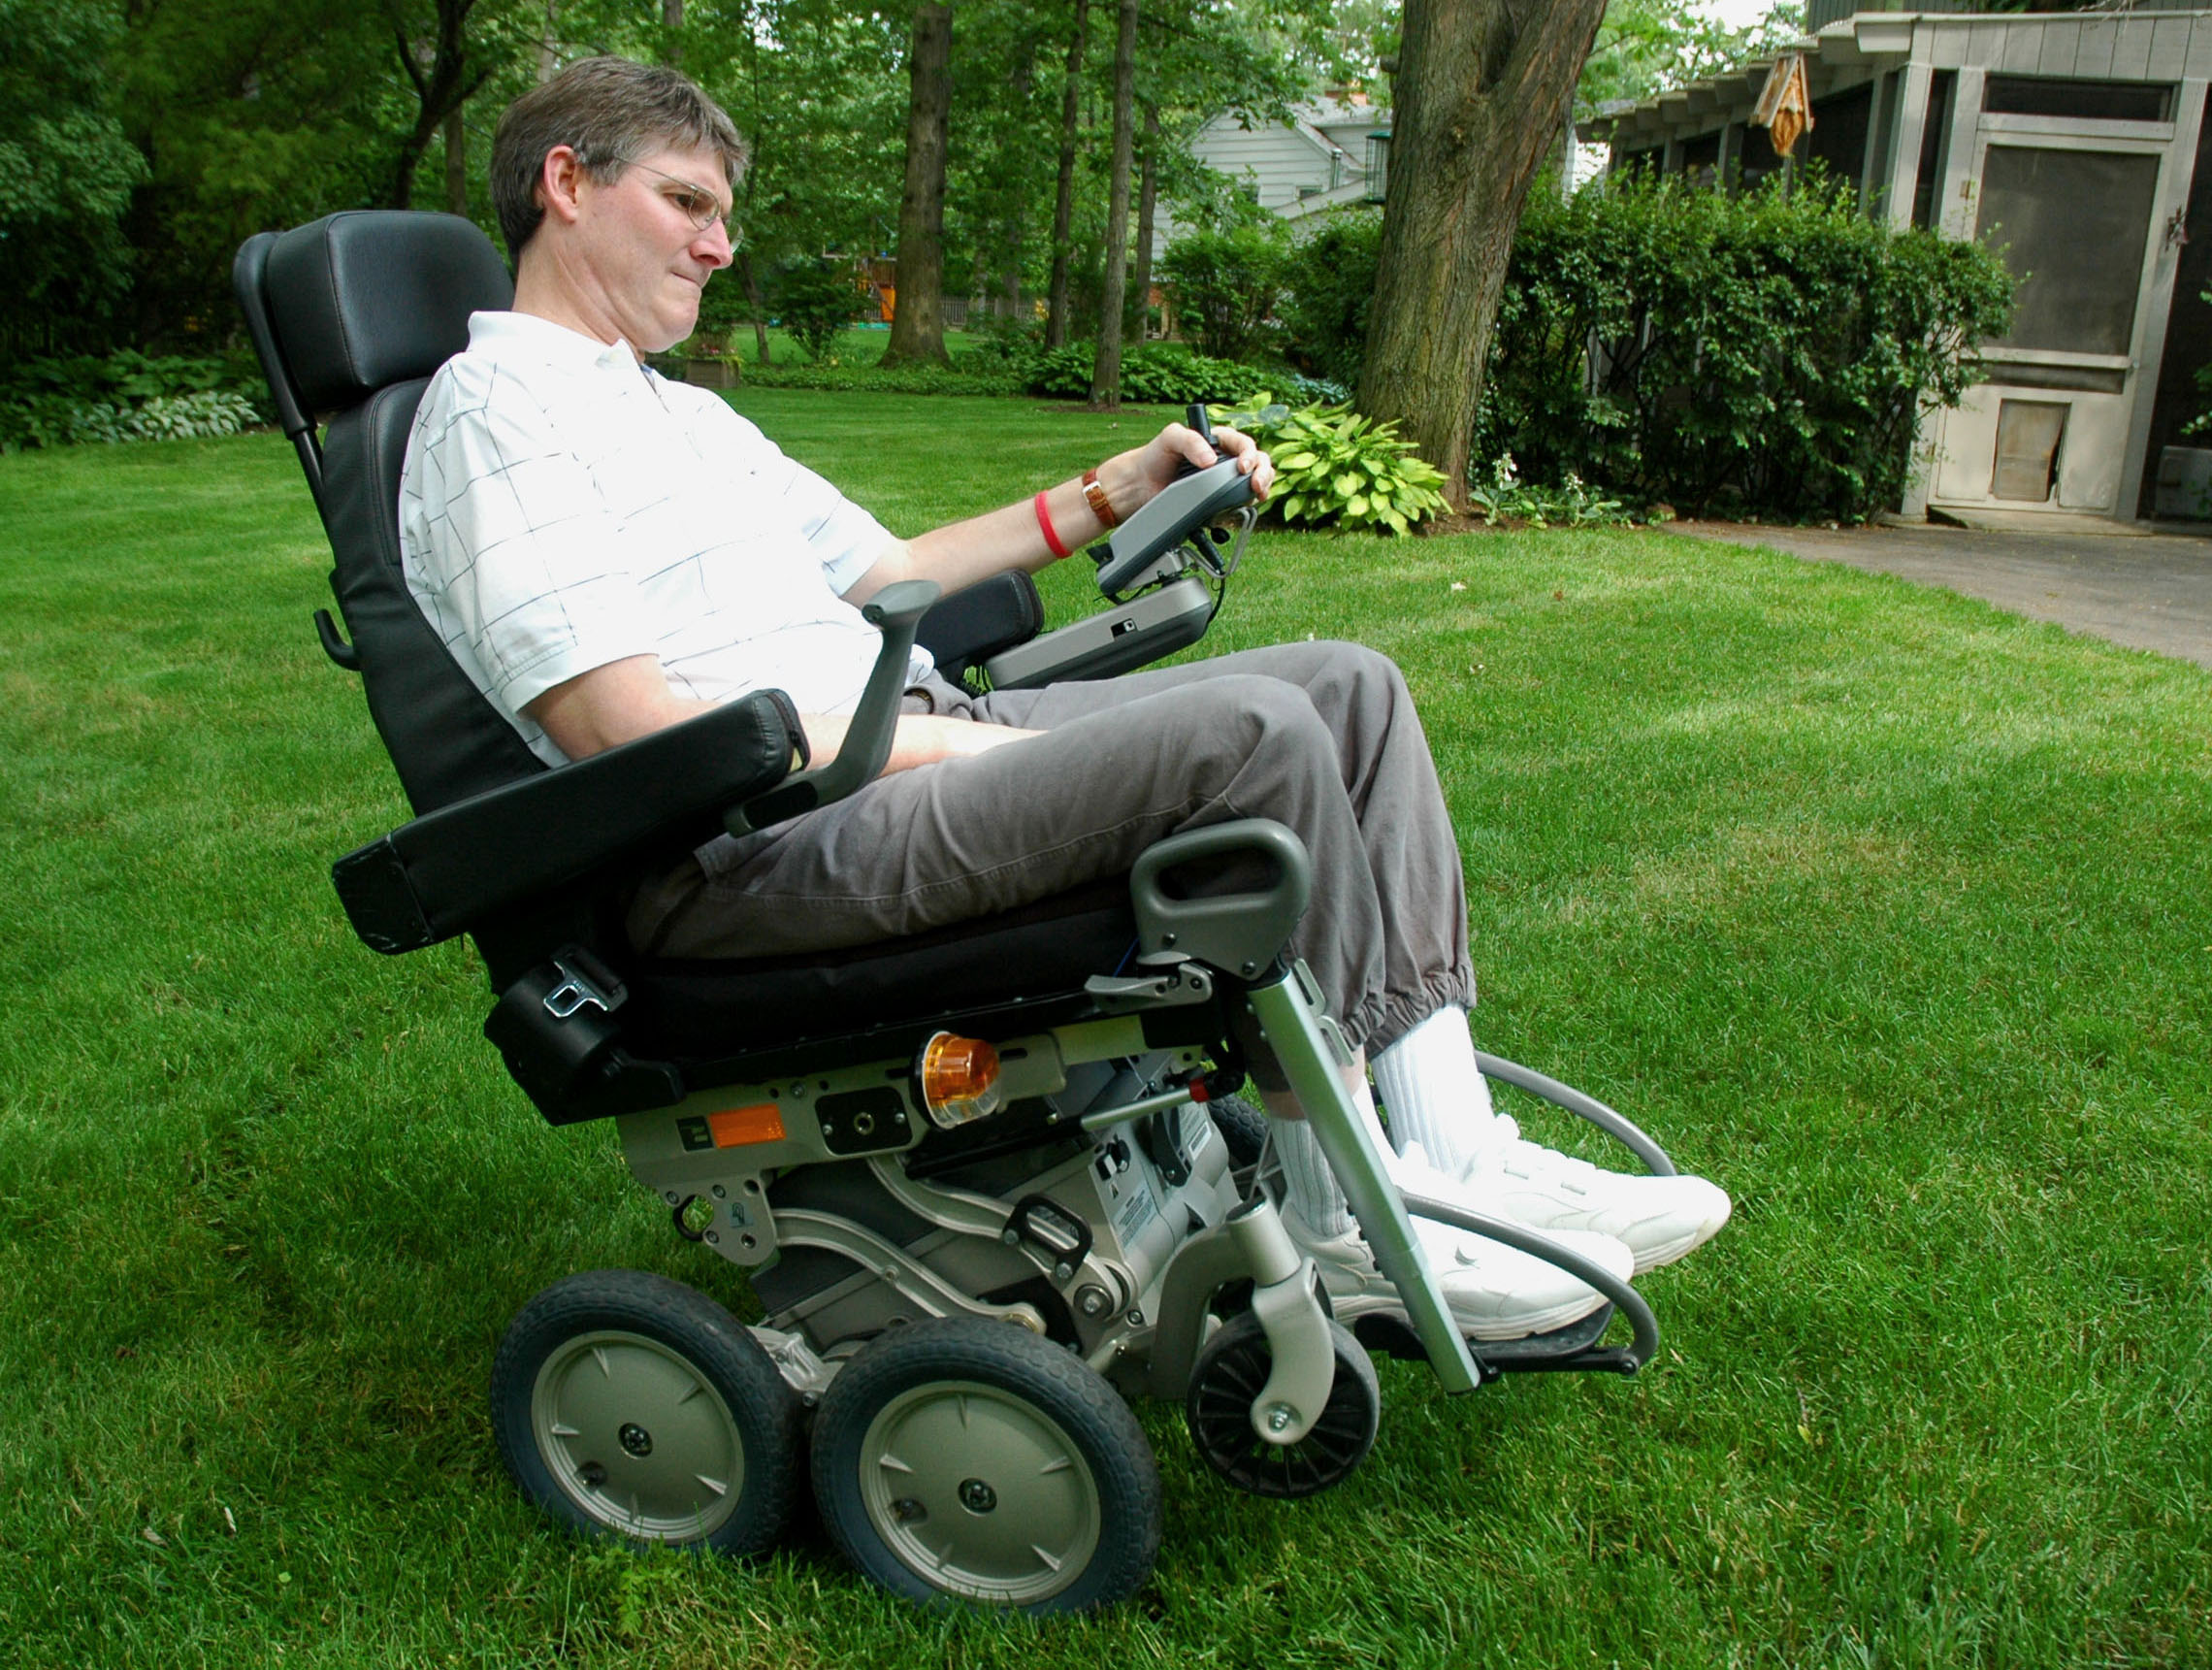 Robert Gregory, 49, who suffers from multiple sclerosis, demonstrates his iBot, a high-tech wheelchair that improves mobility for the disabled, in his backyard